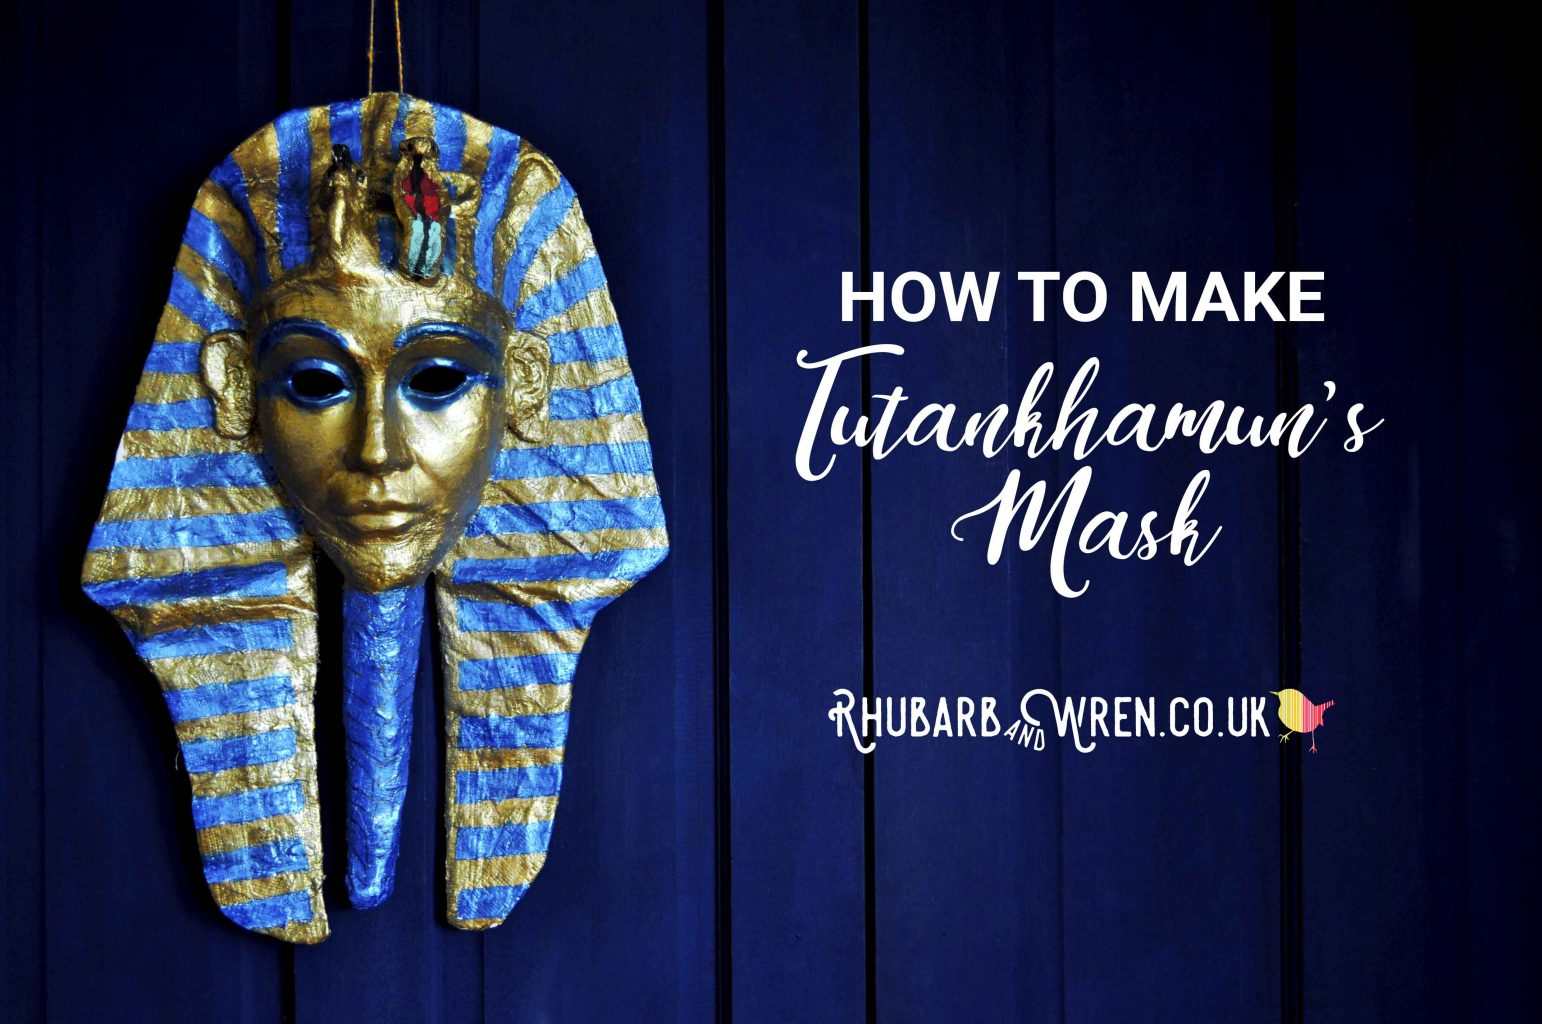 how to make King Tutankhamun's mask